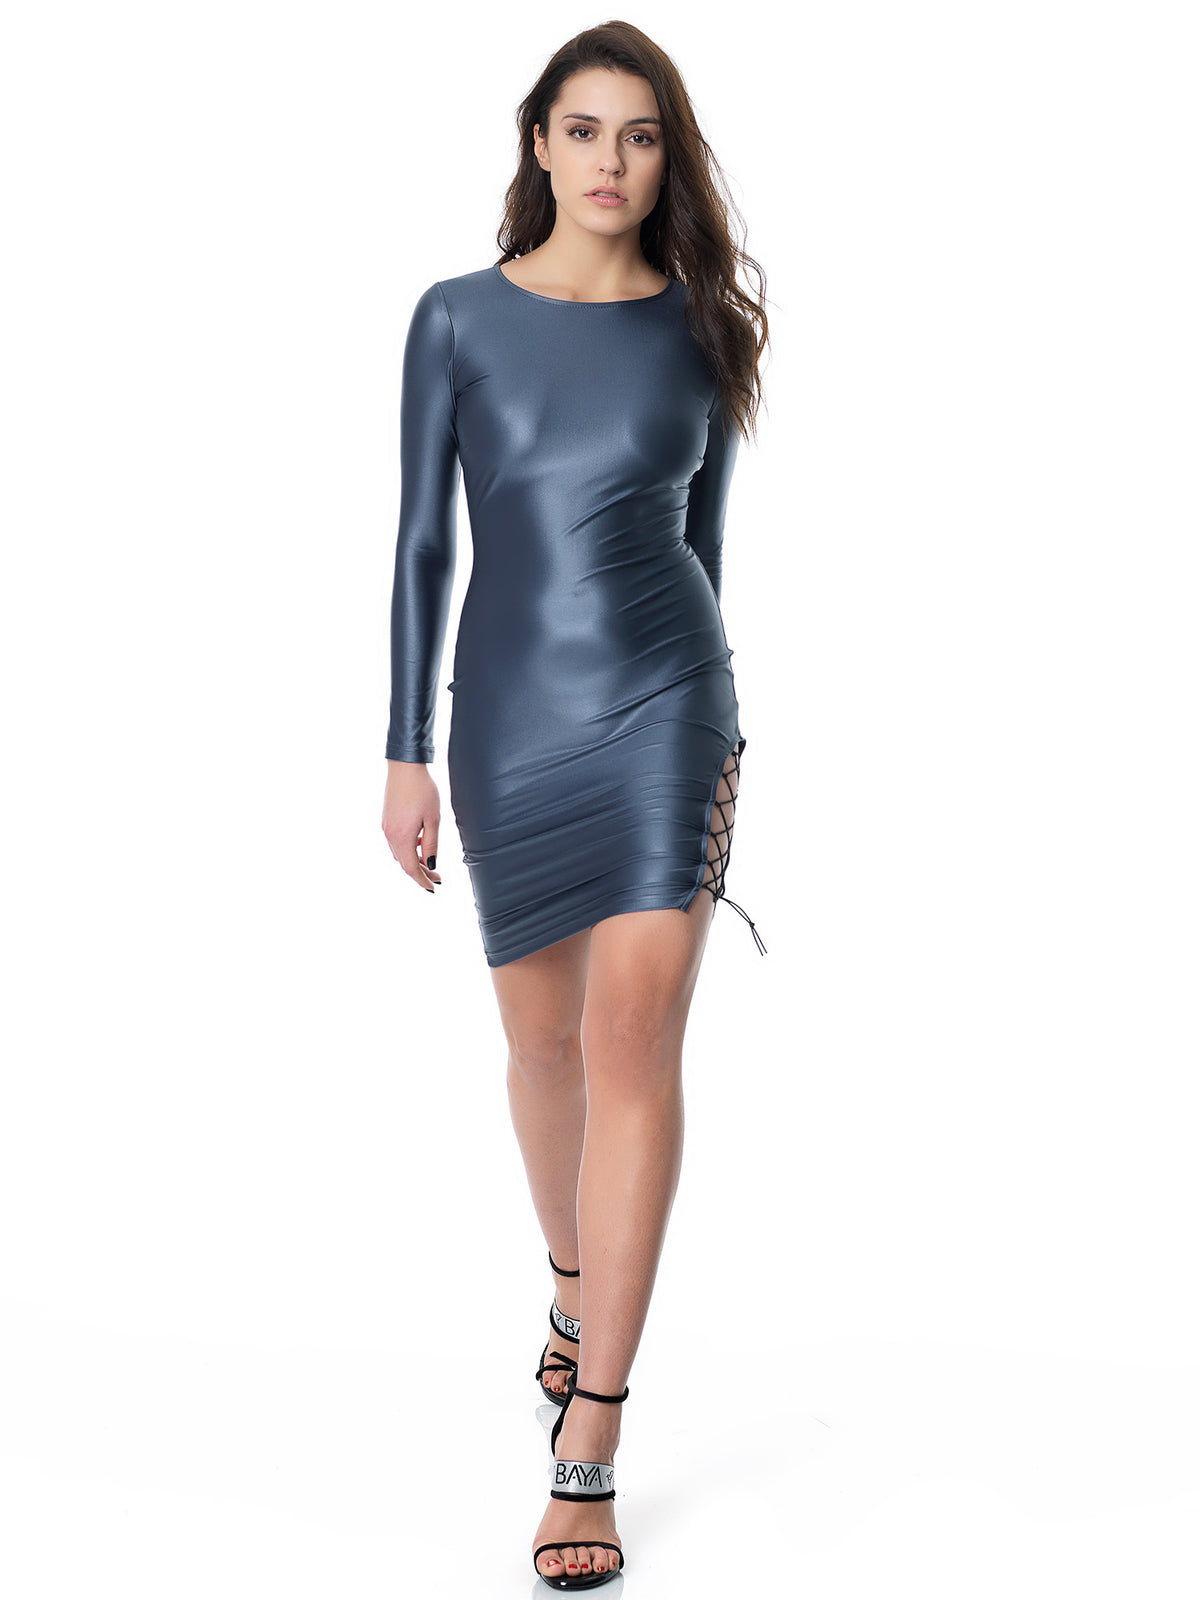 DAZZLE STRIPE DRESS (MOONLIGHT)